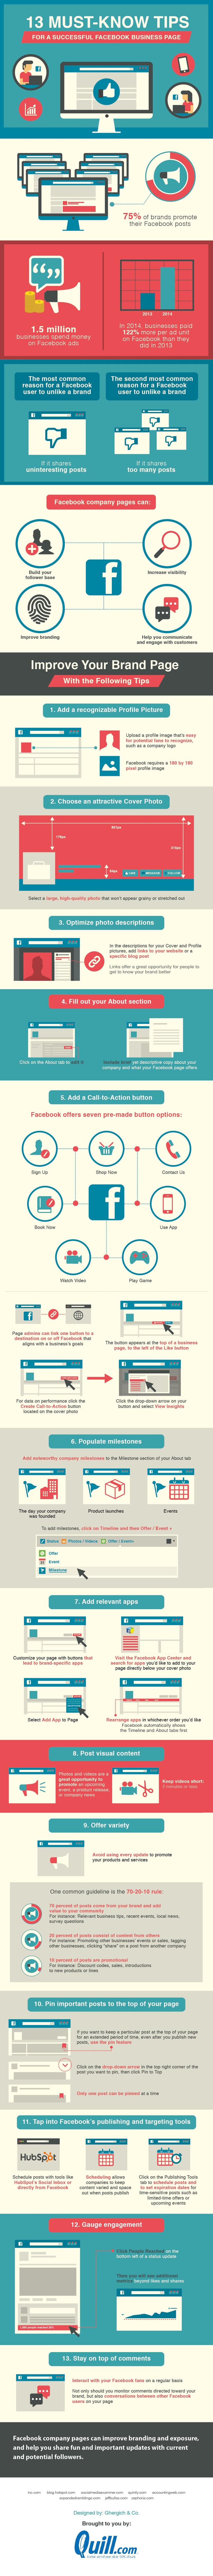 13 Tips Successful Facebook Page